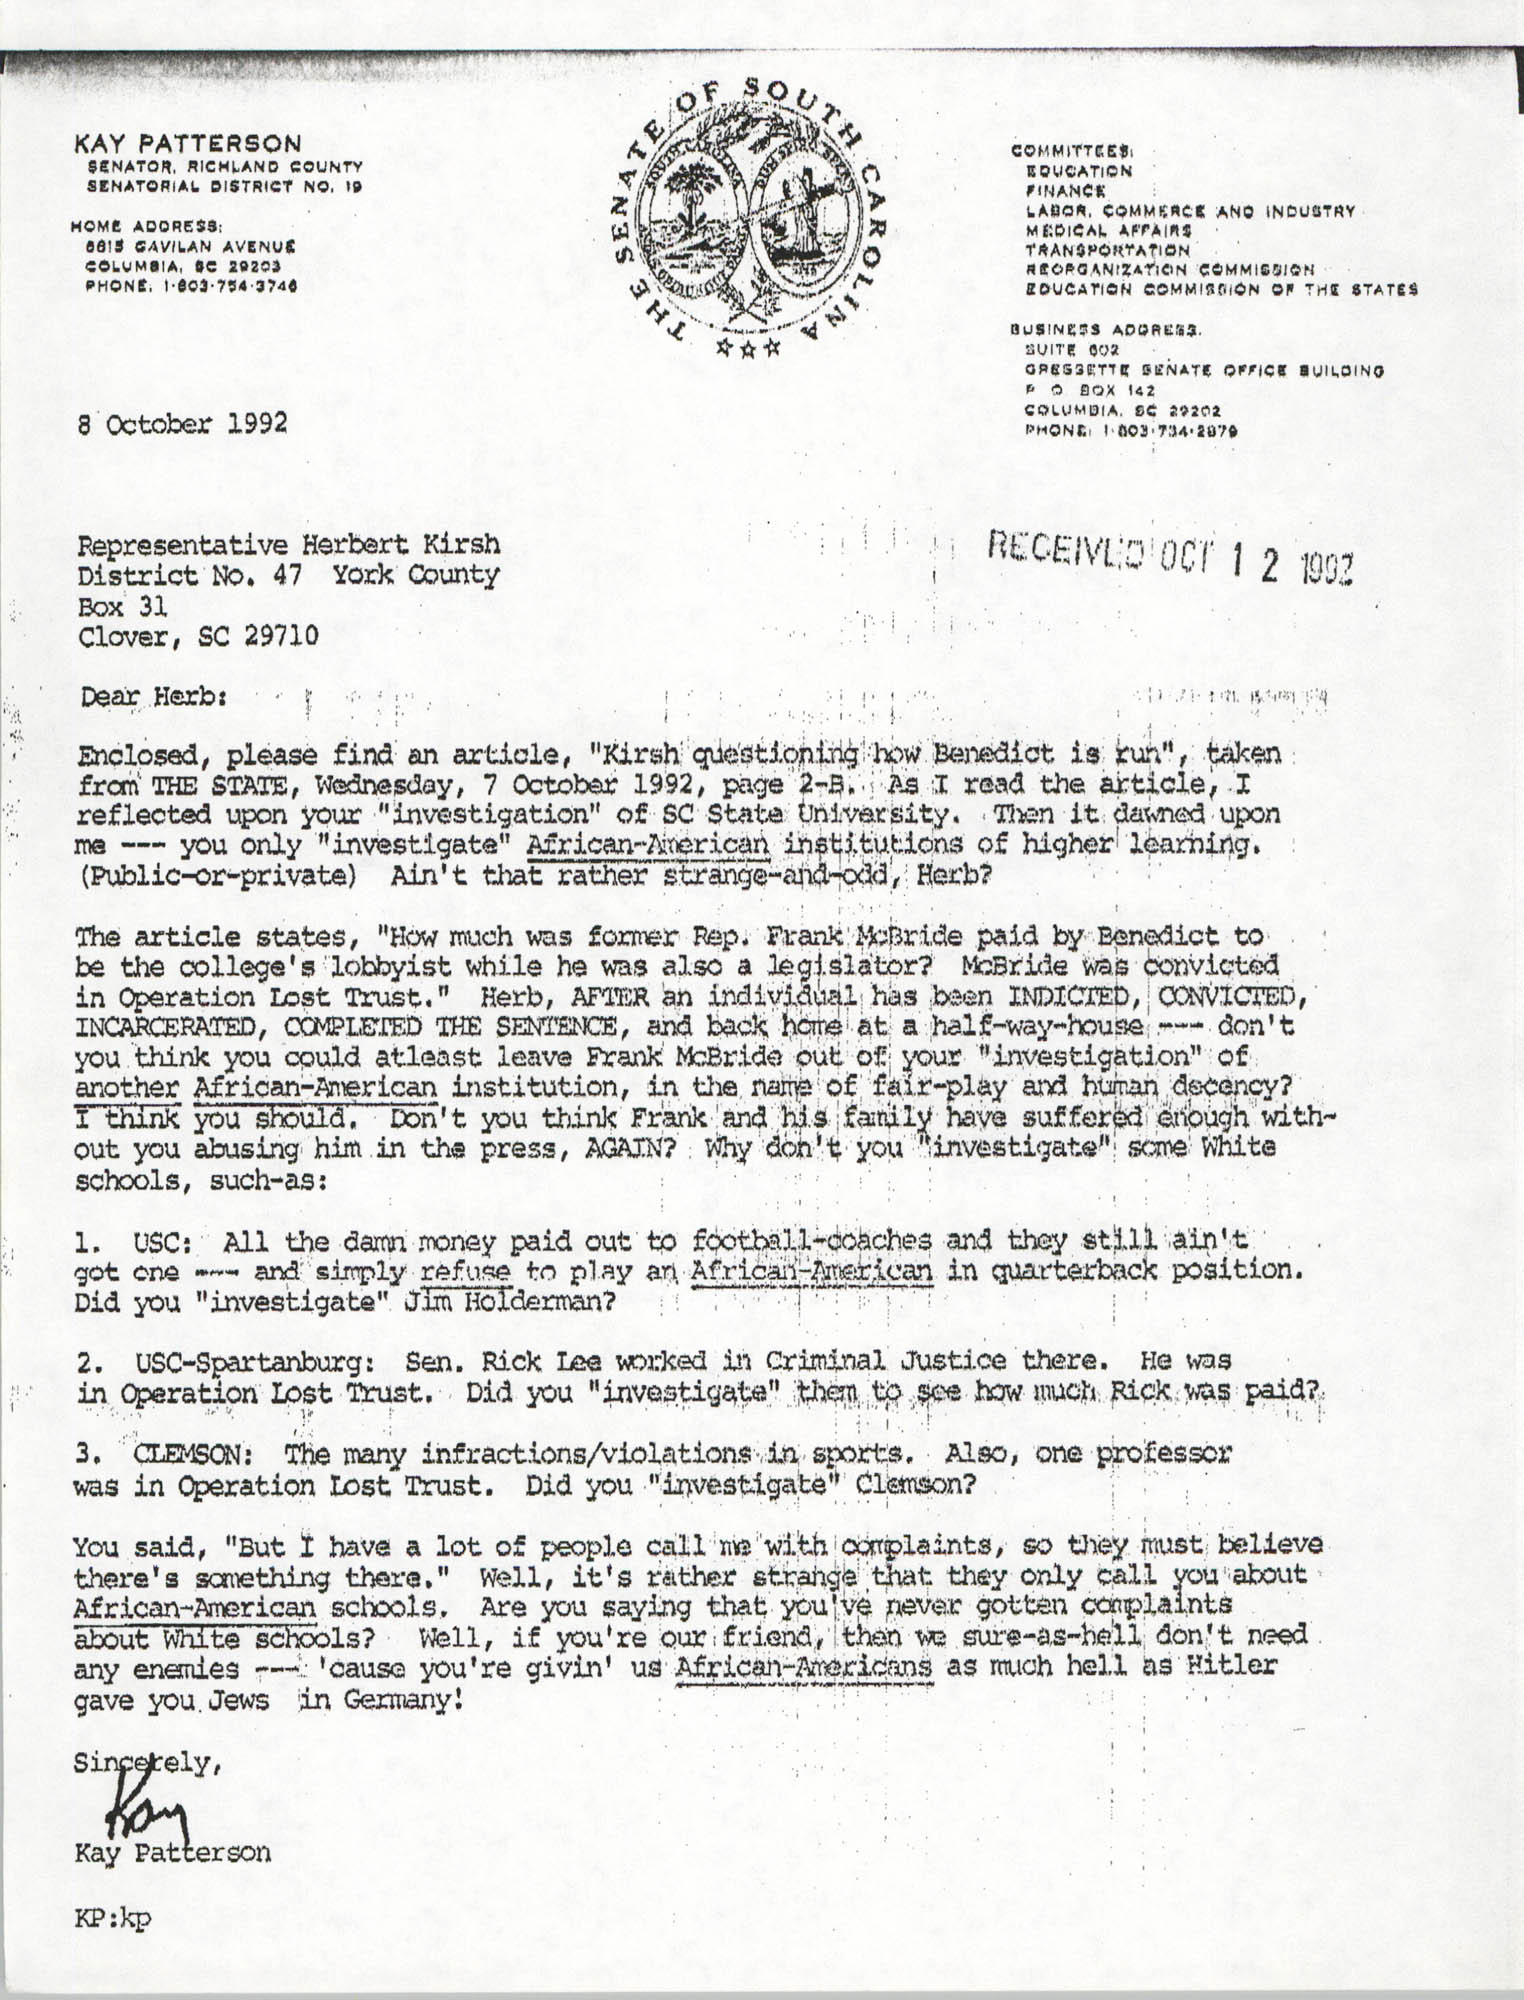 Letter from Kay Patterson to Herbert Kirsh, October 8, 1992